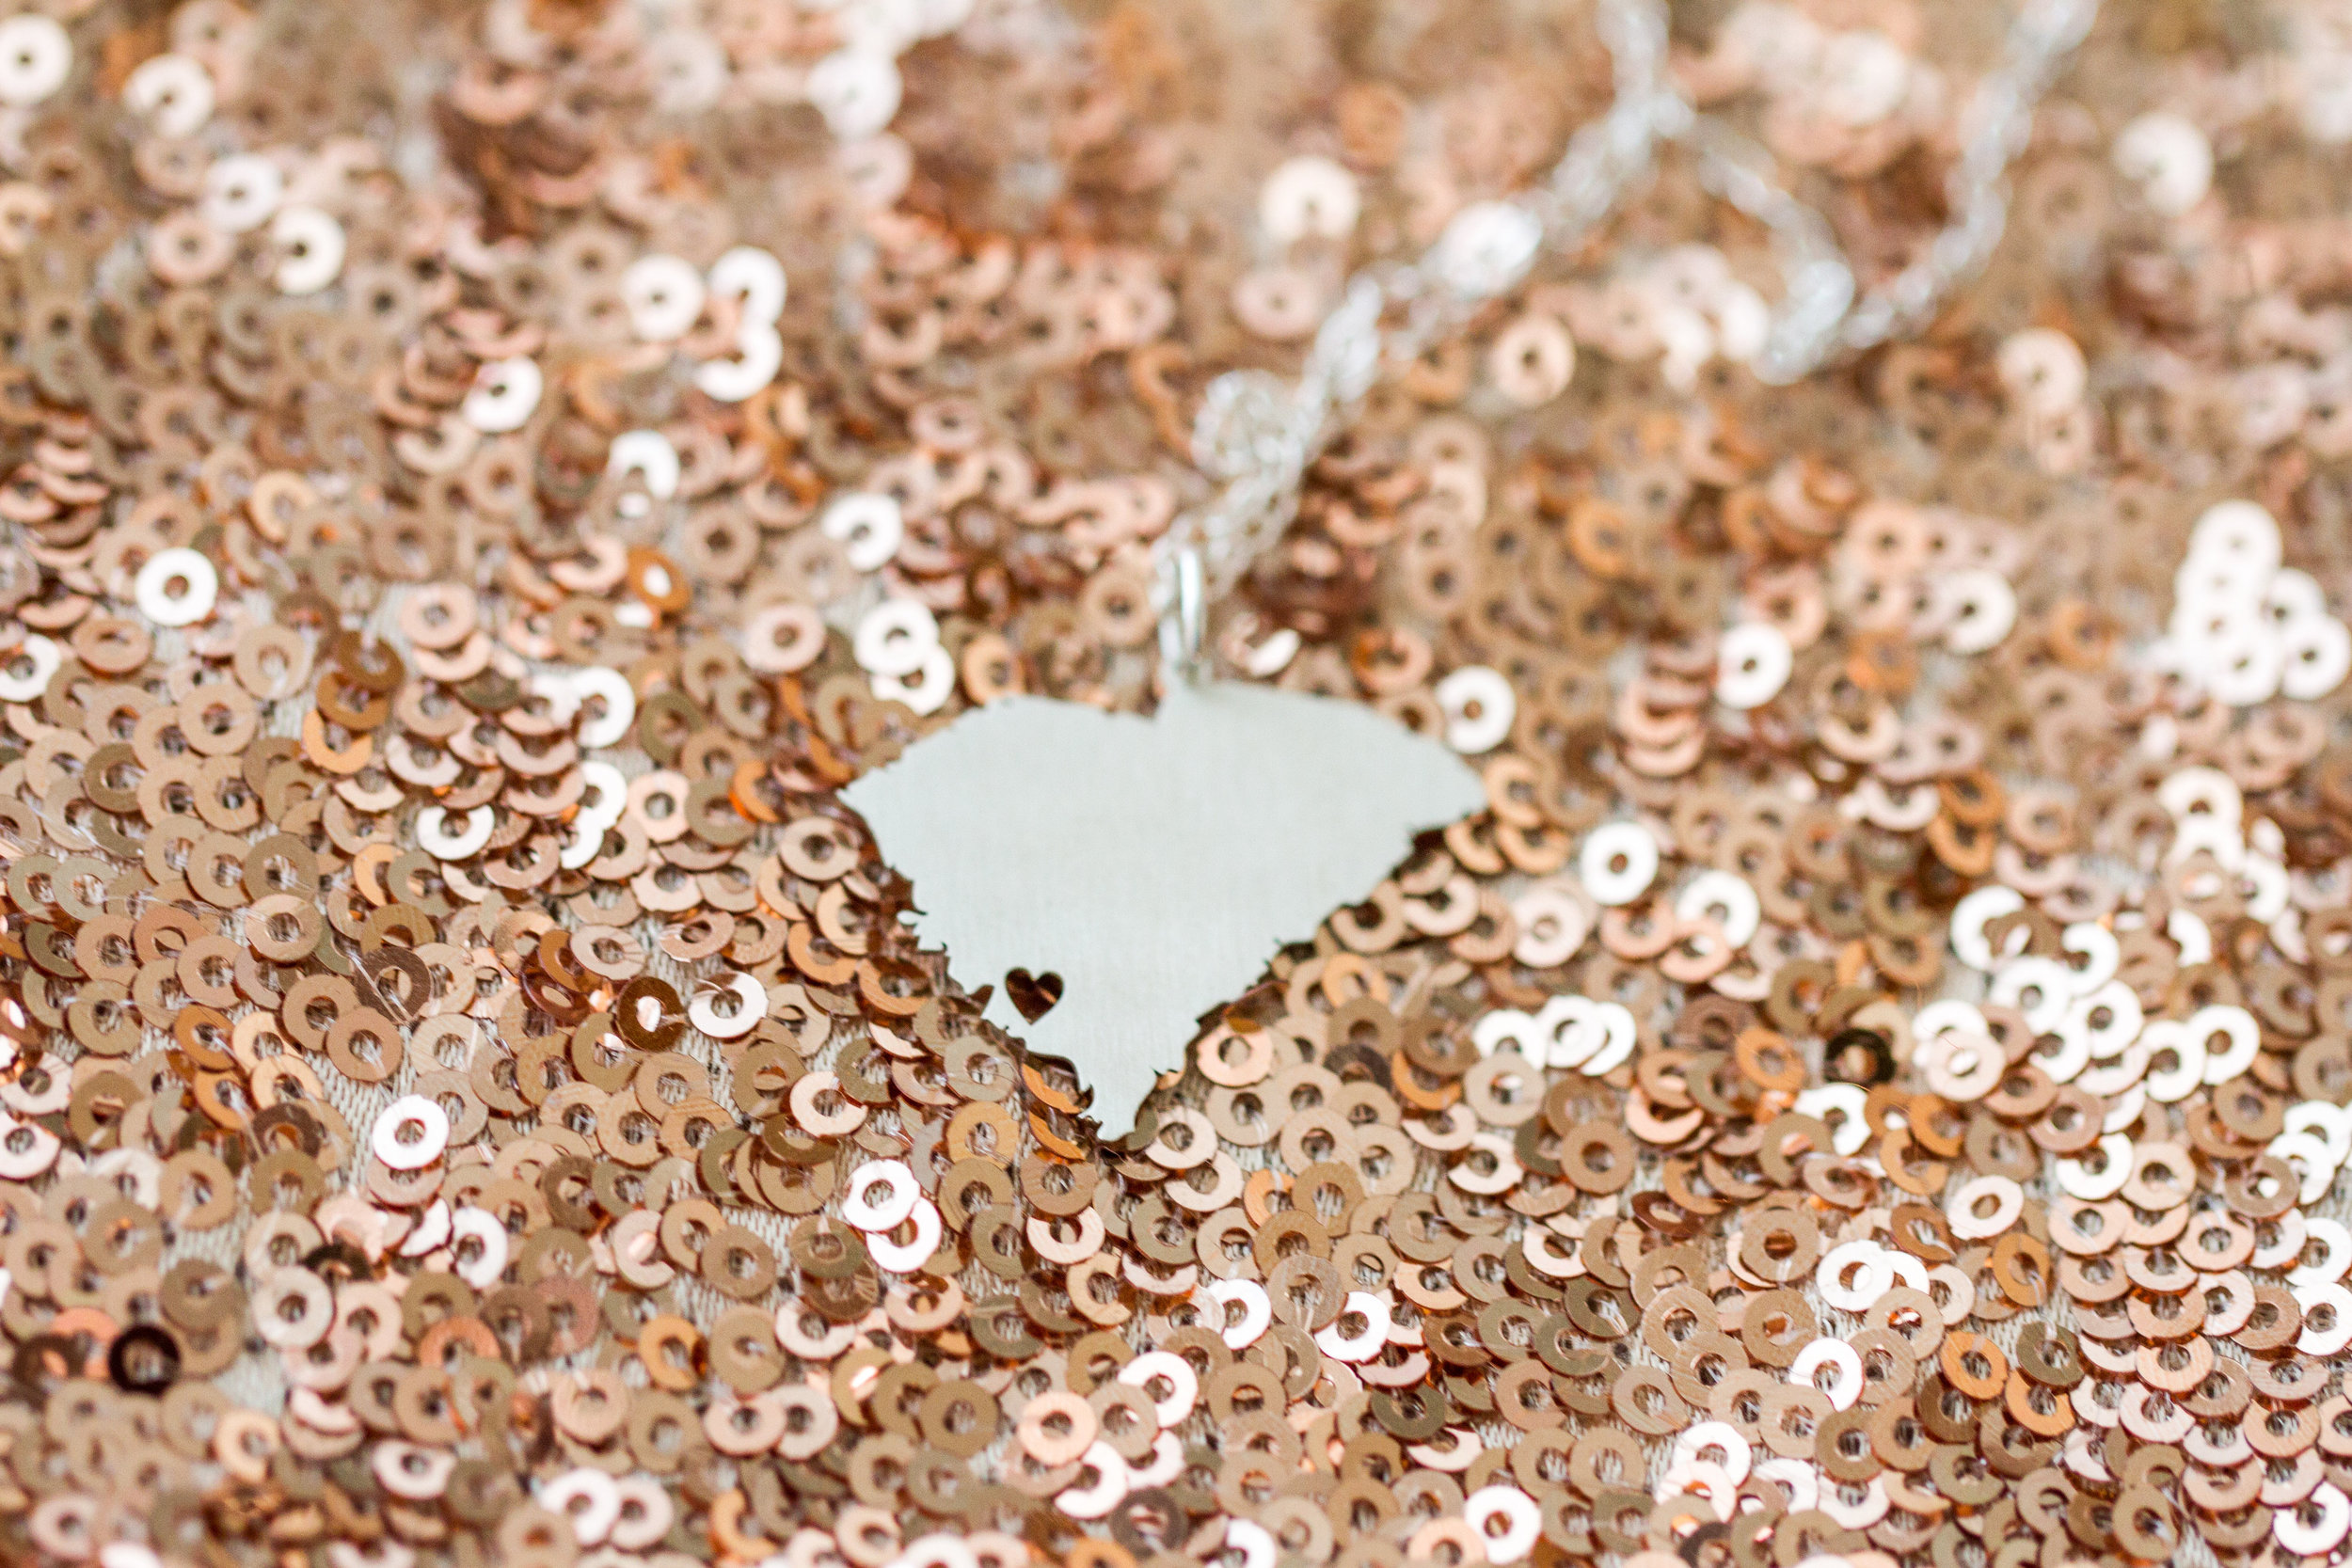 South Carolina state necklace | Lorin Marie Photography